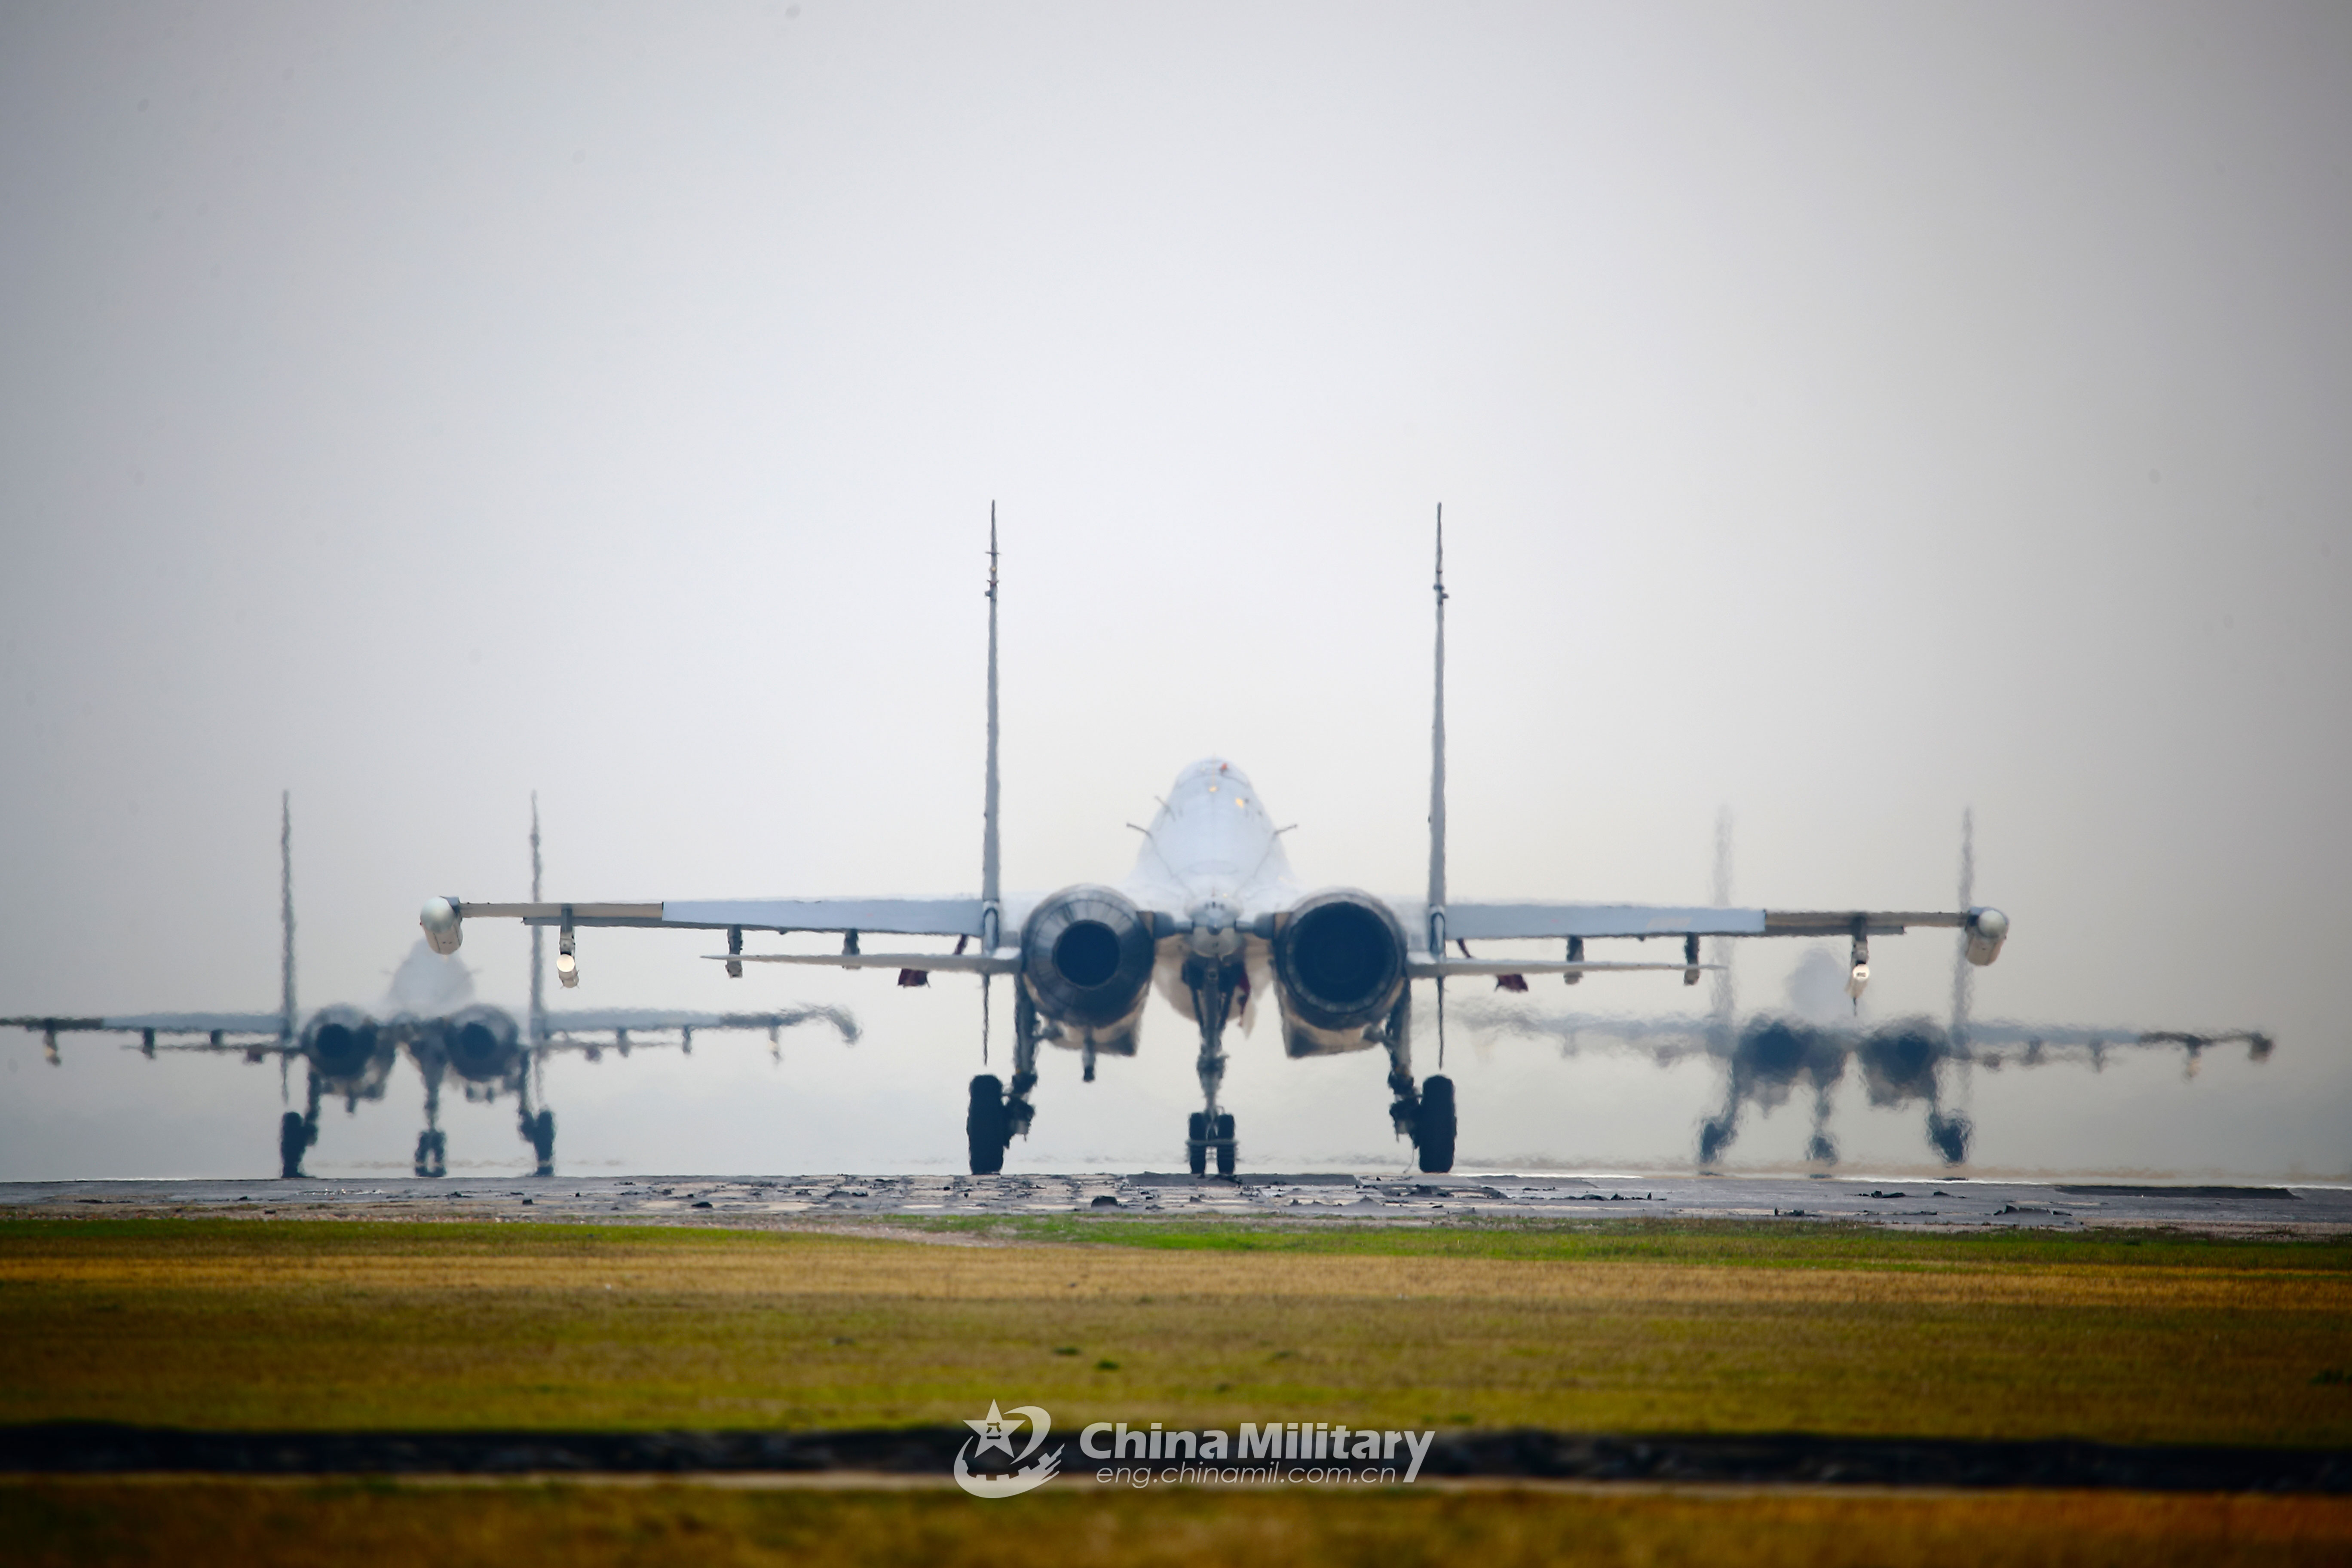 Fighter jets await approval to takeoff - China Military